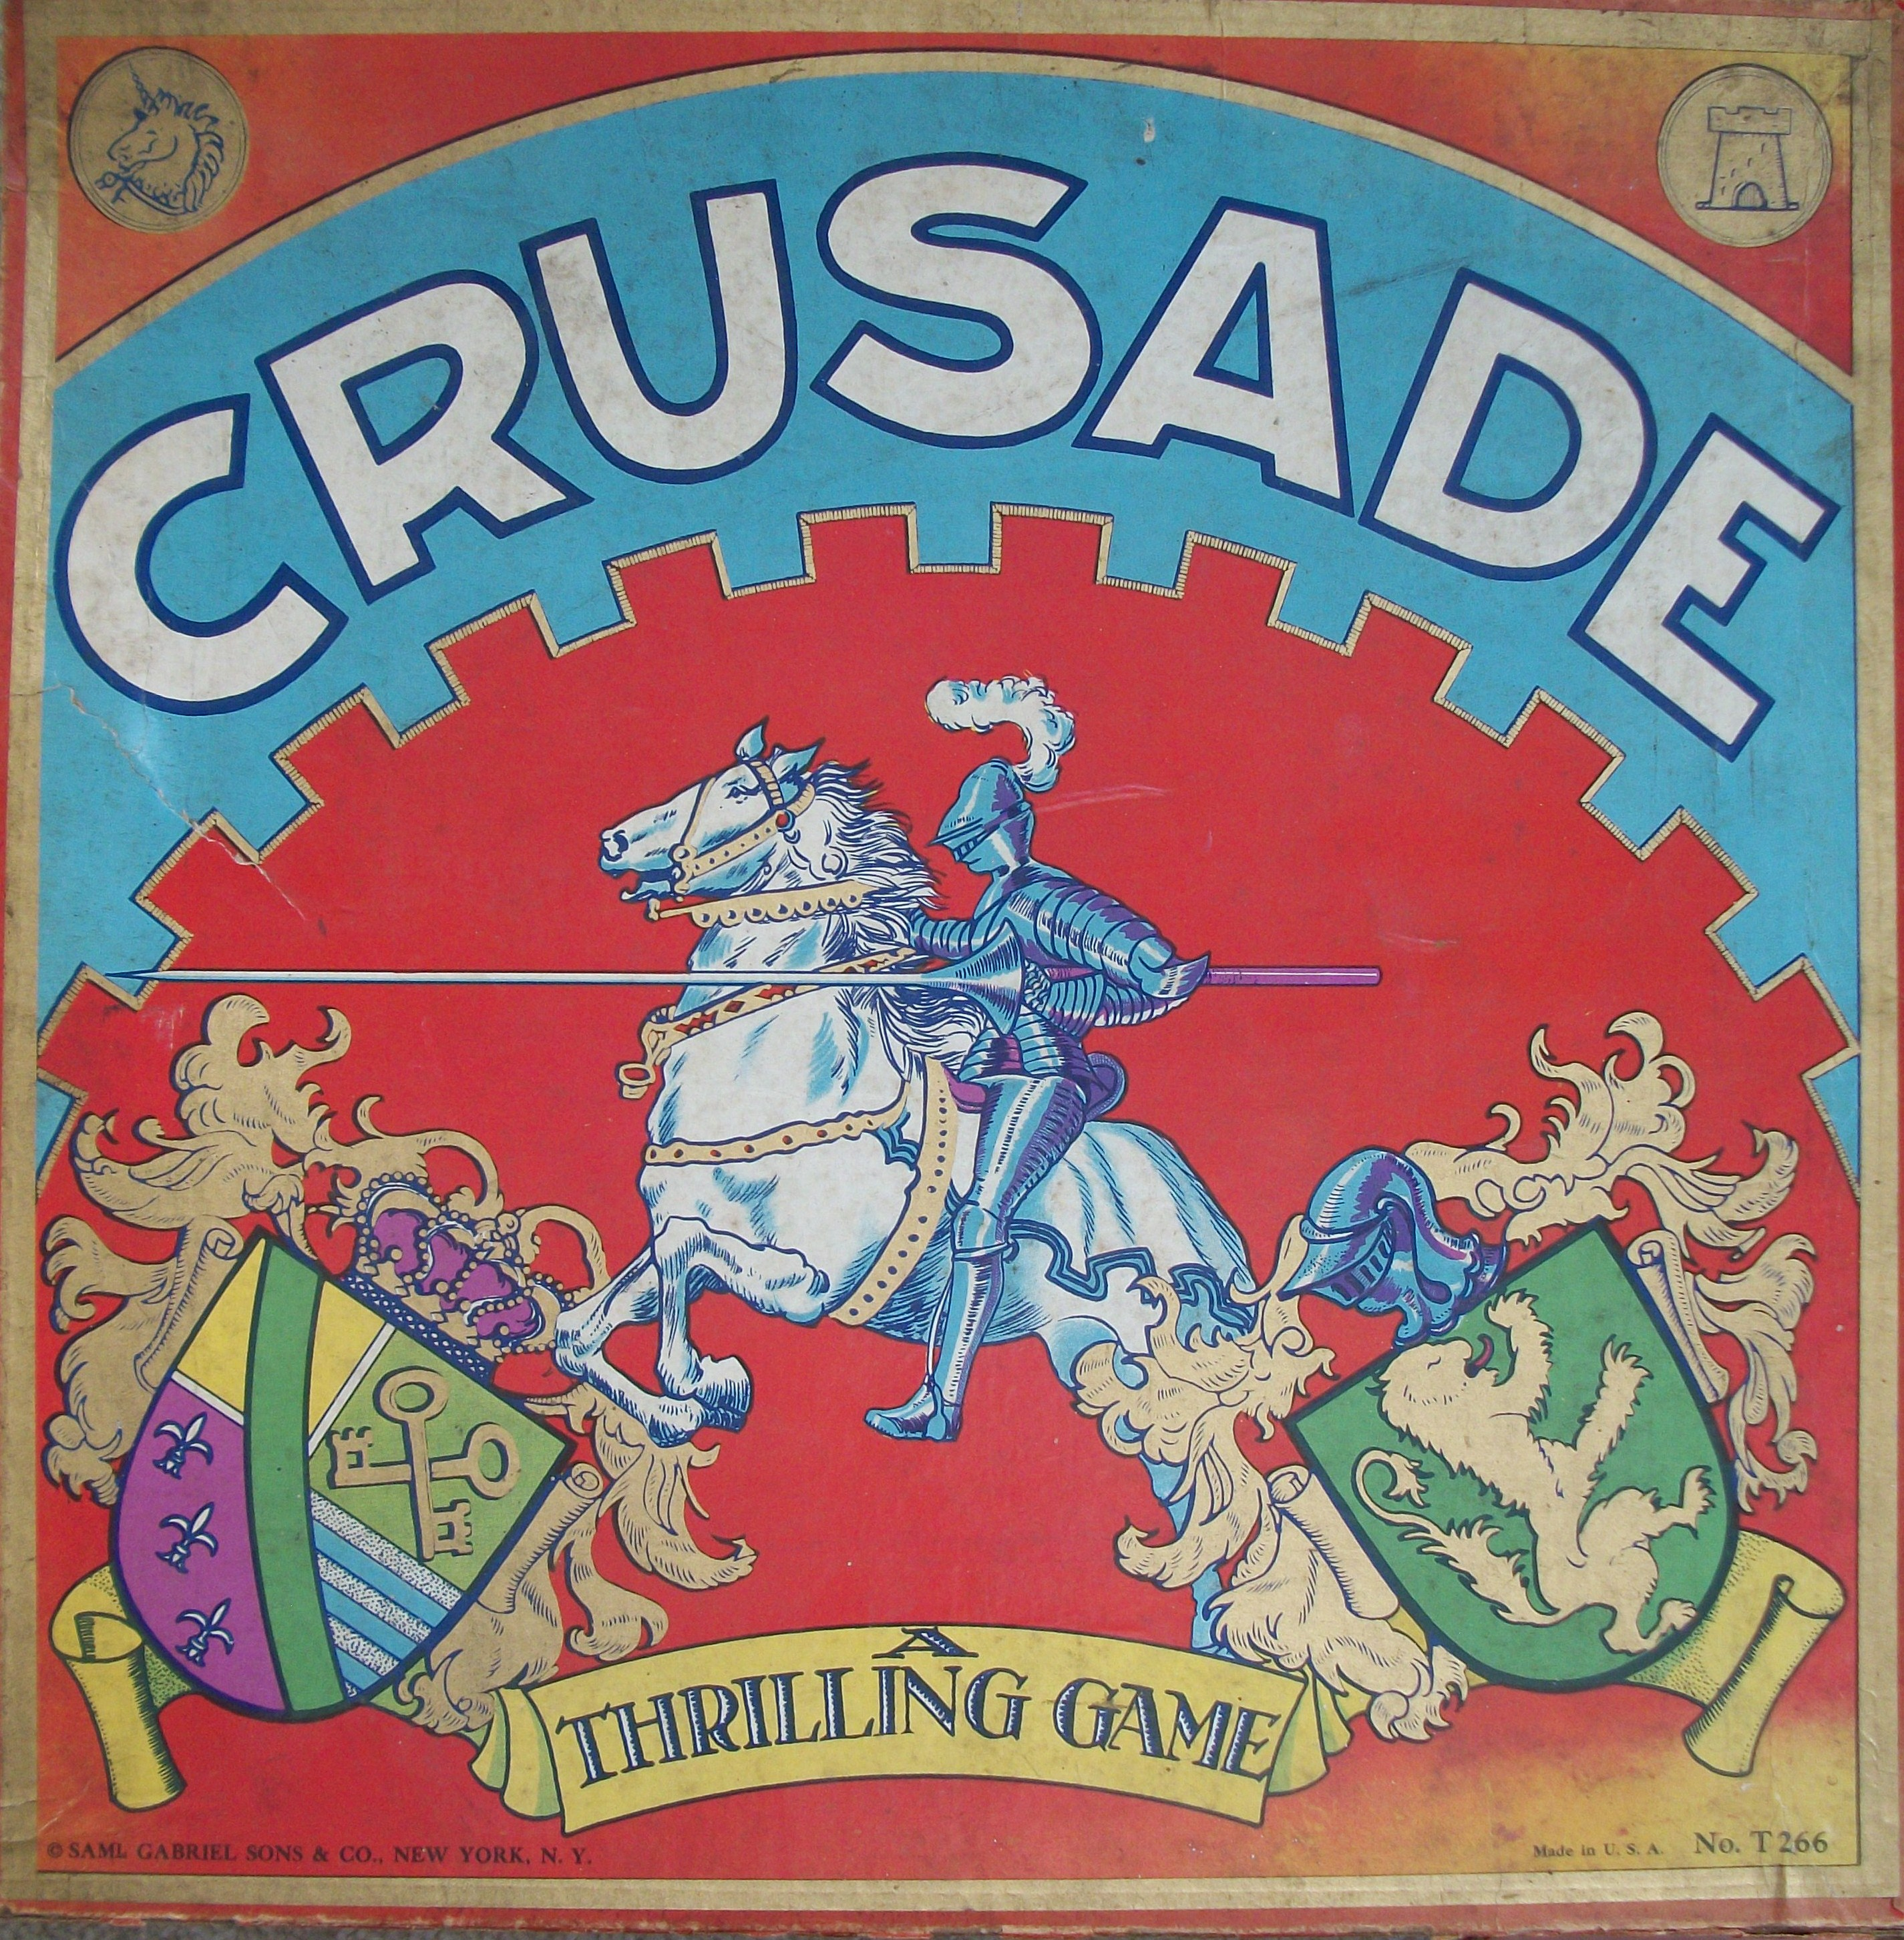 1923 Crusade game by Saml Gabriel Sons & Company